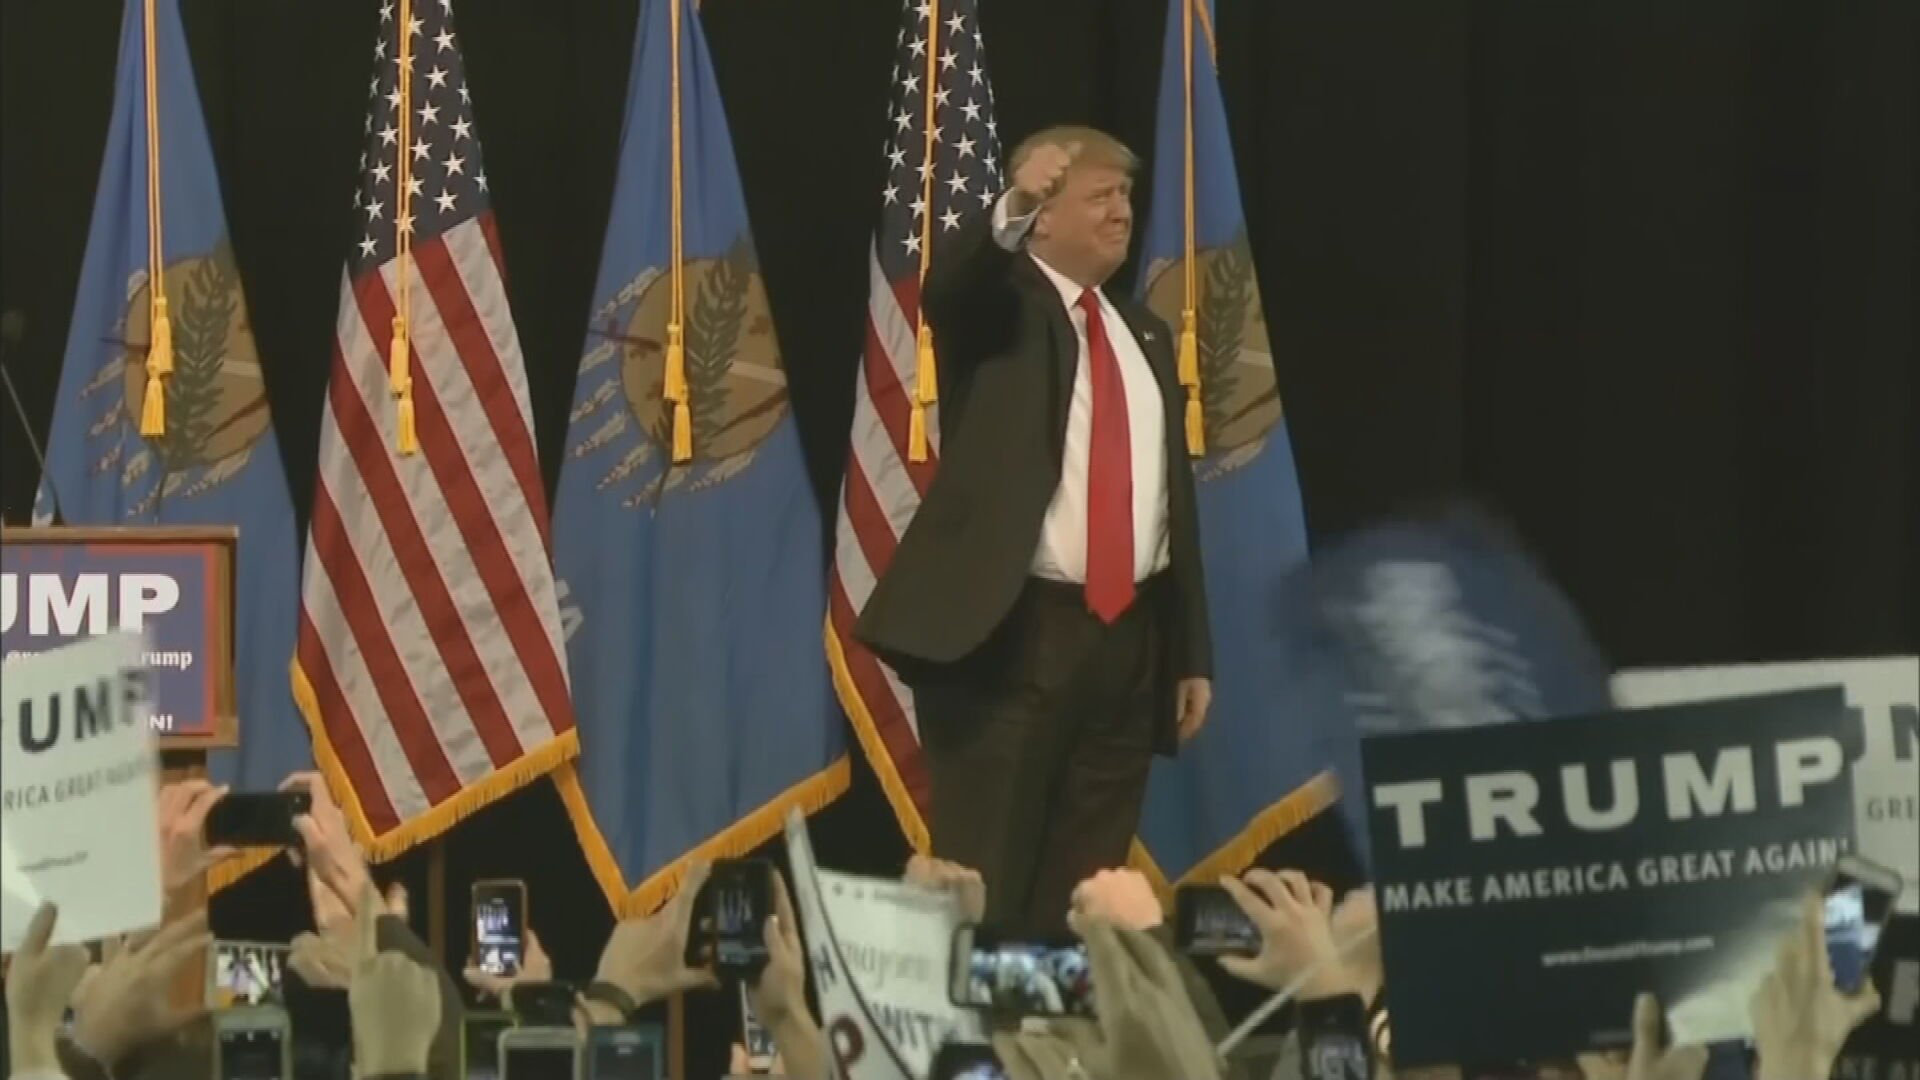 Health Officials Warn Of Potential COVID-19 Spread During President Trump Rally